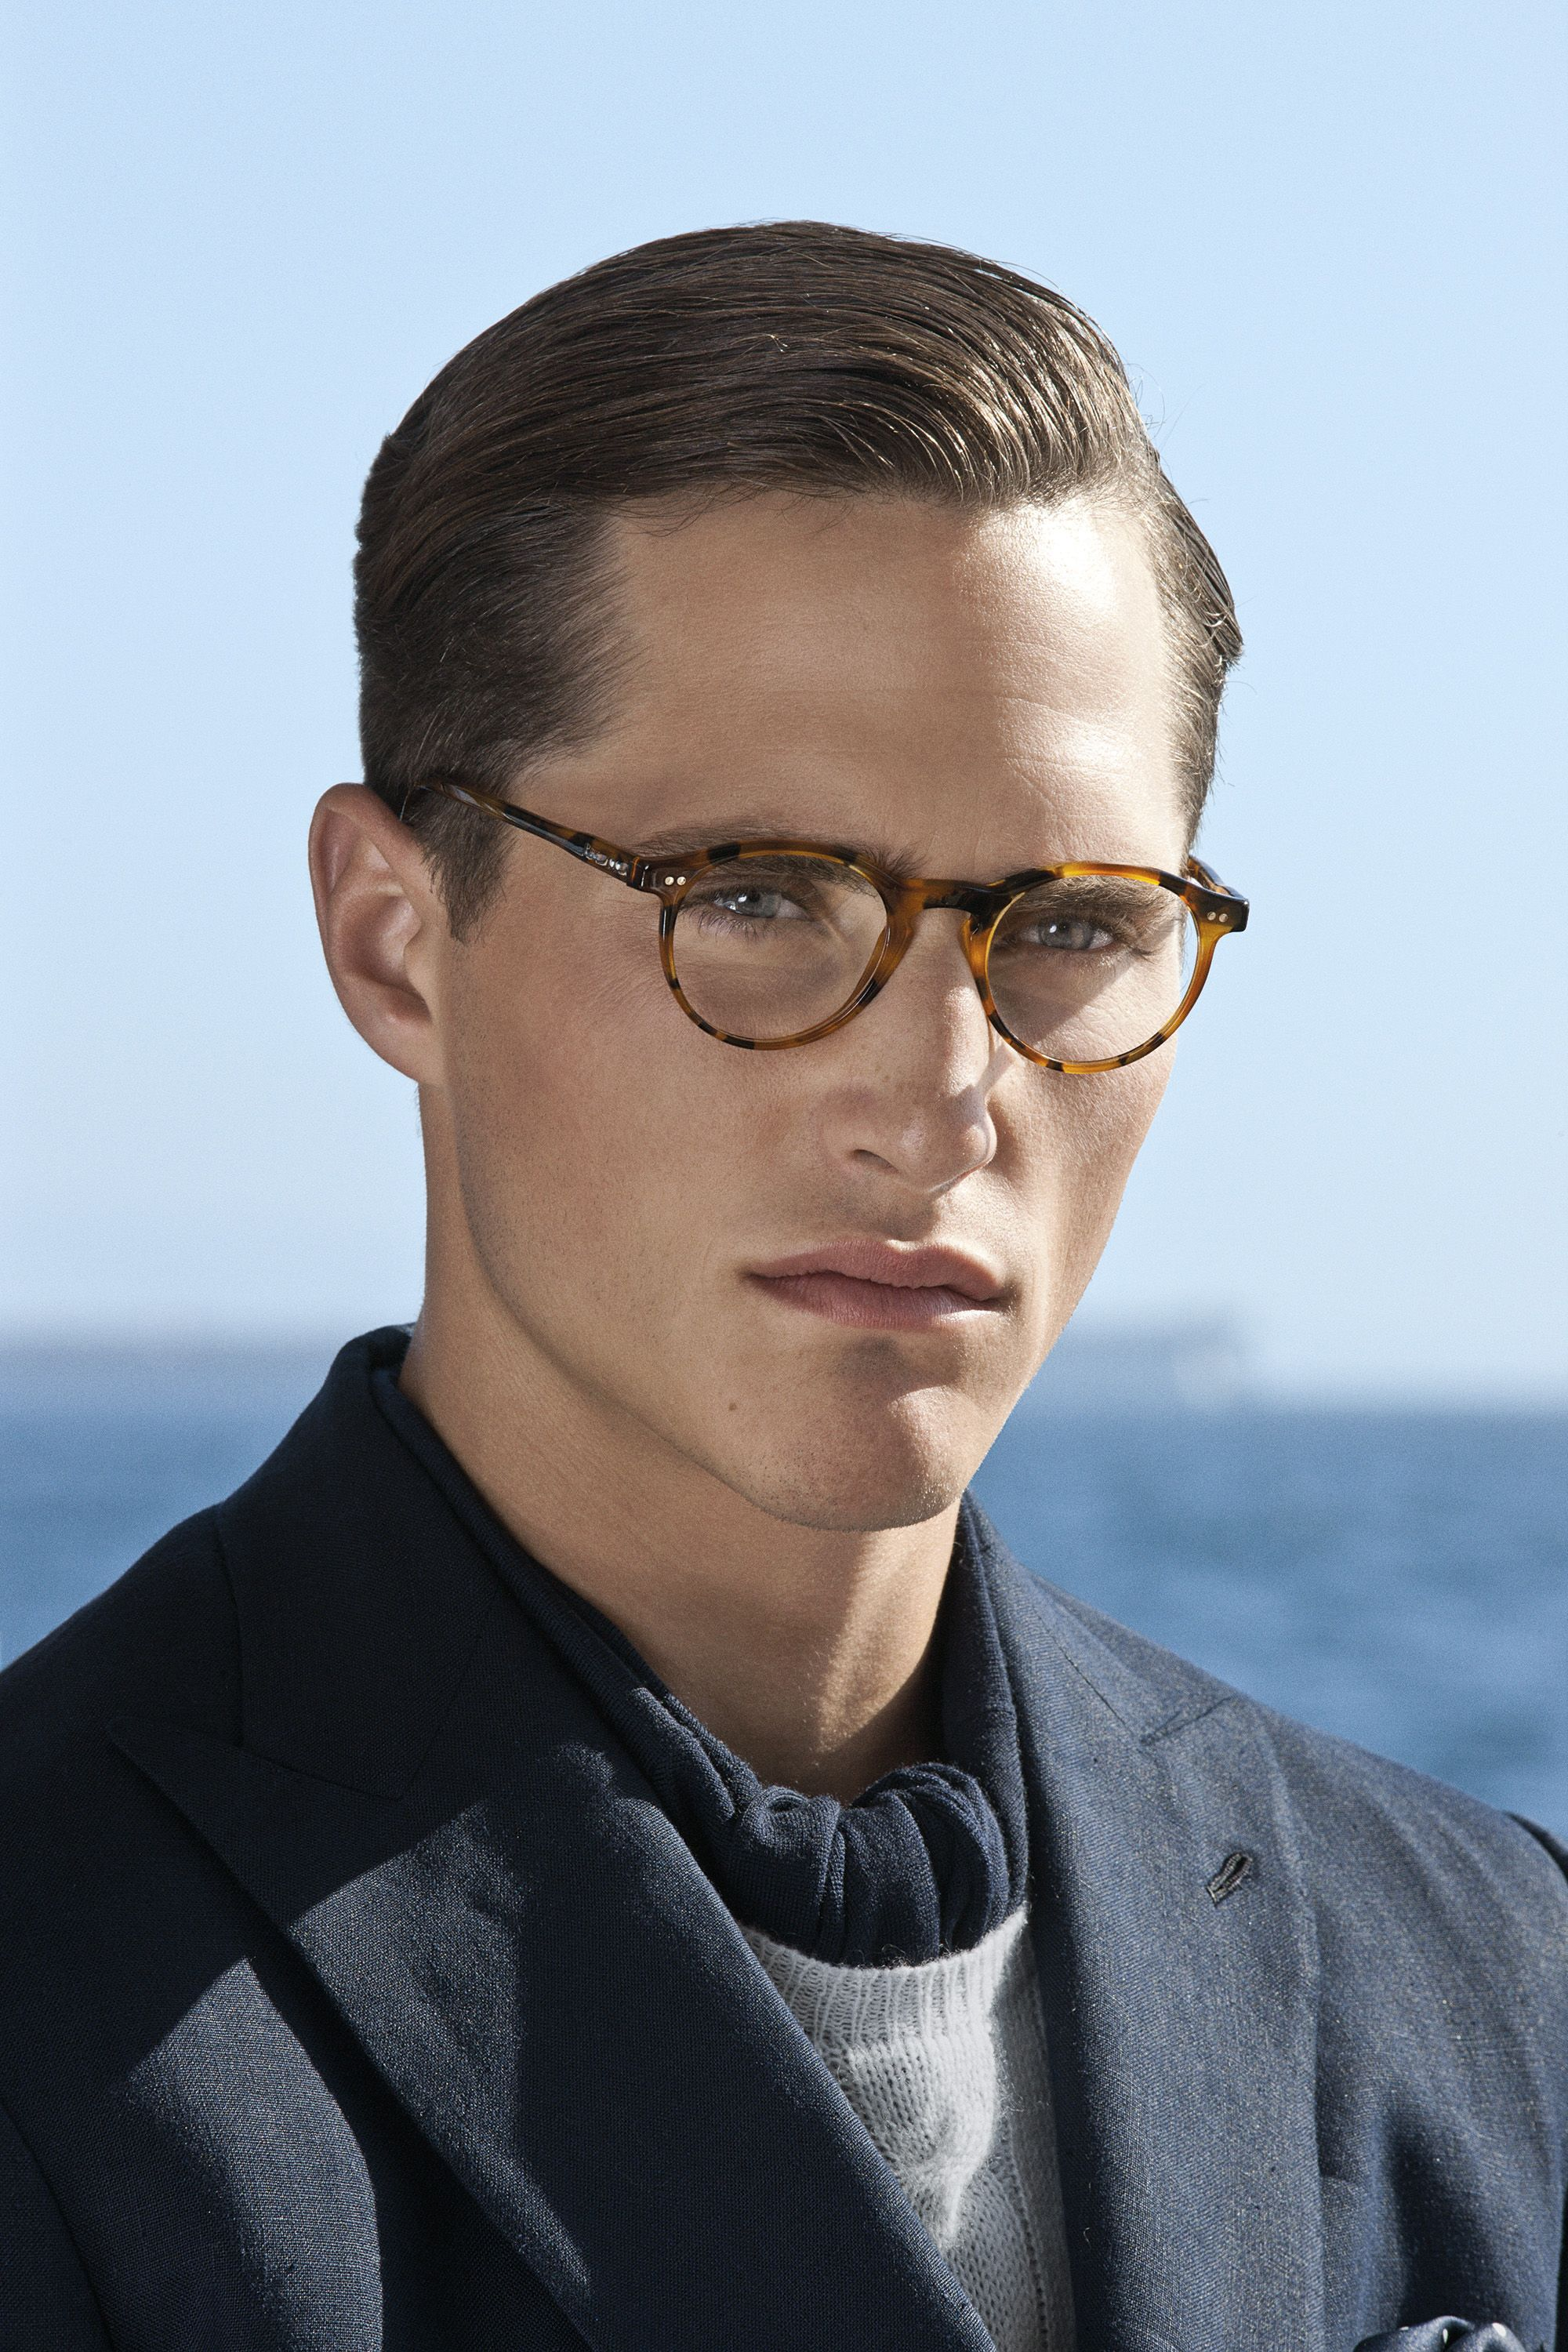 Mens Hairstyles With Glasses Ralph Lauren Purple Label Spring 2012 Eyewear Purple Label